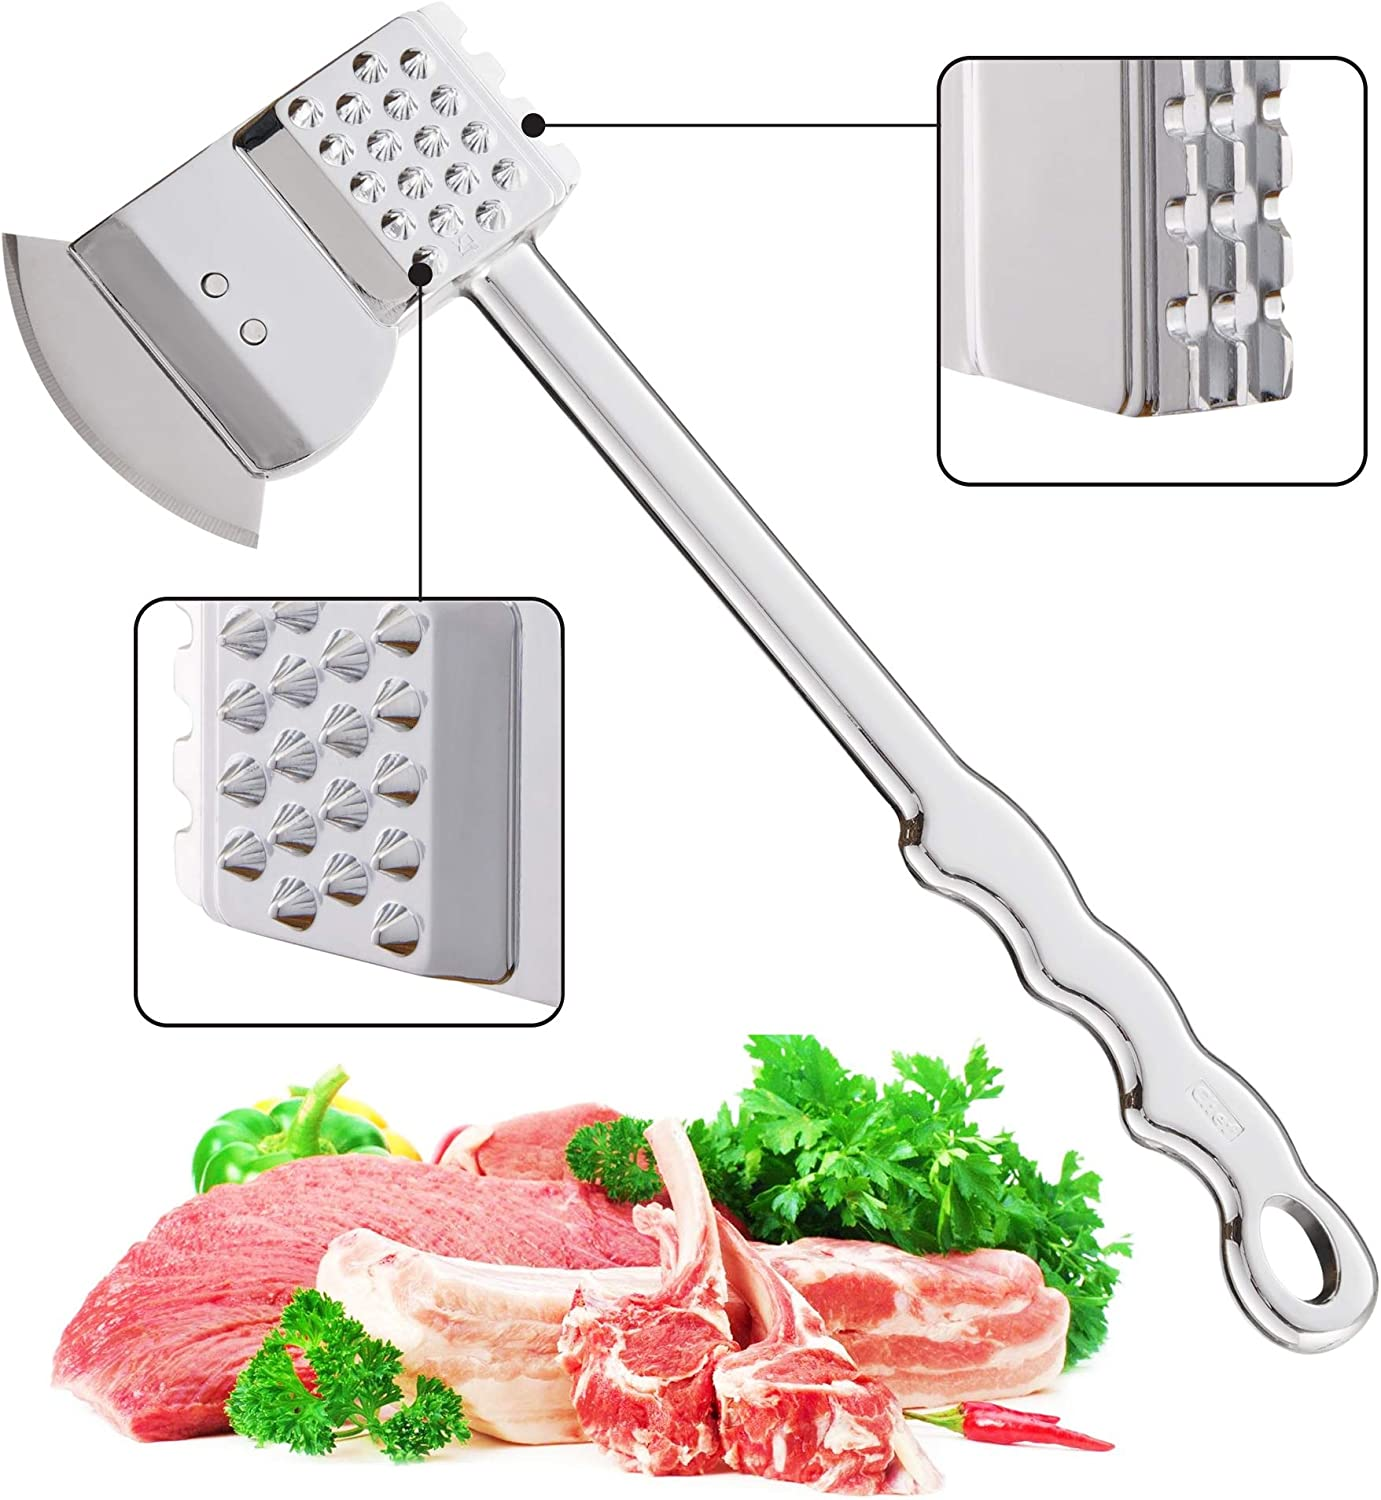 REMIHOF Meat Tenderizer and Pounder 4-in-1 - Dual Sided Meat Tenderizer Mallet, Dishwasher Safe Heavy Duty Meat Hammer Softener is perfect for Tenderizing Steak, Beef, Chicken, Lamb and Minced Meat